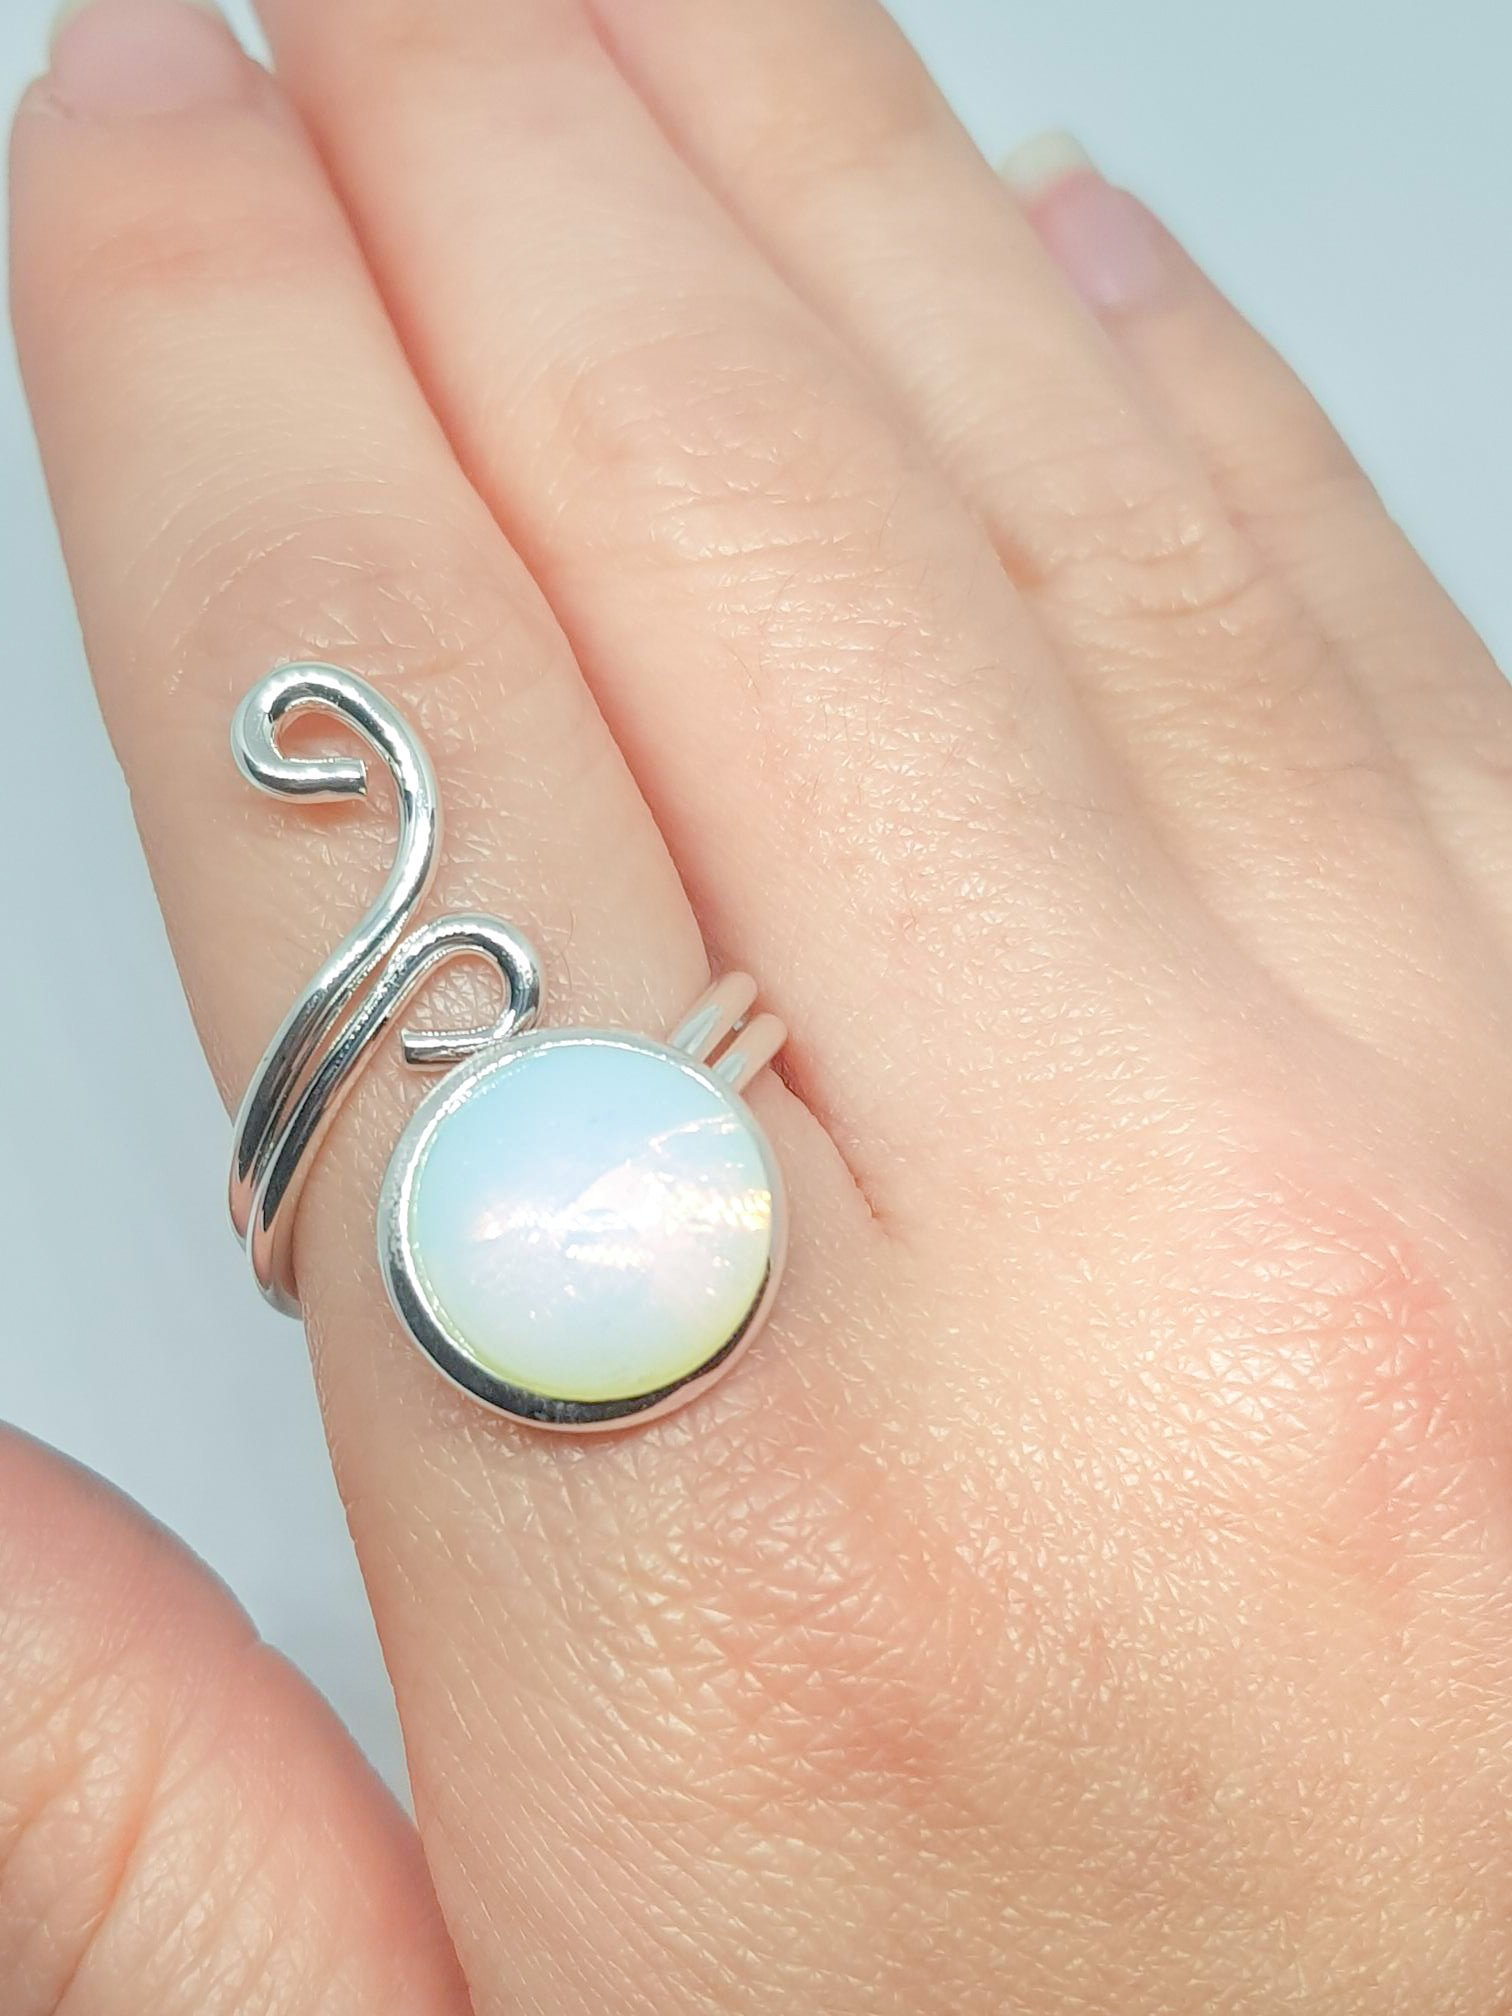 Opal Ring - Polished Round Opal Gemstone Ring - Adjustable Silver Plated Ring